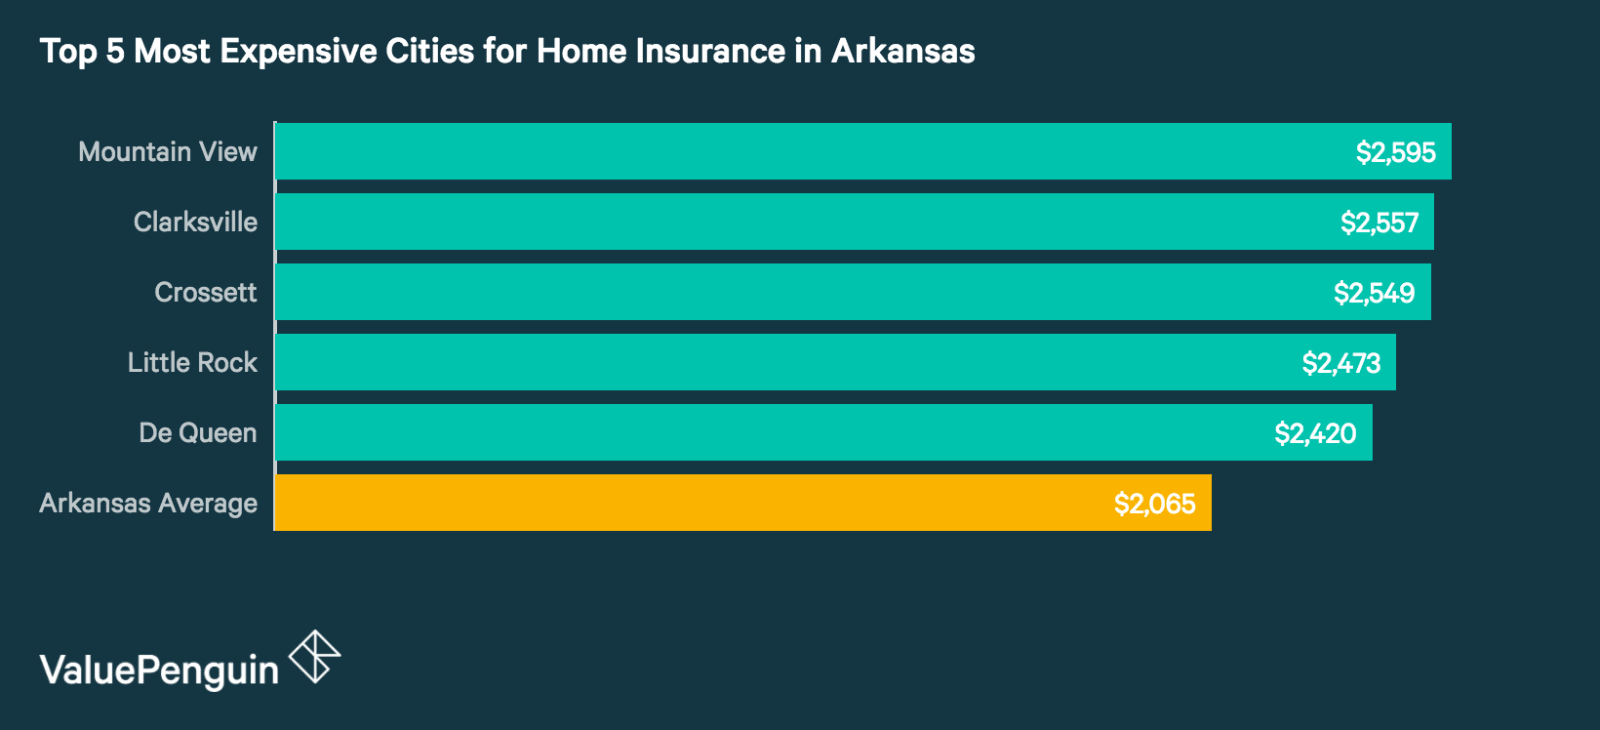 Top 5 Most Expensive Cities in Arkansas for Homeowners Insurance